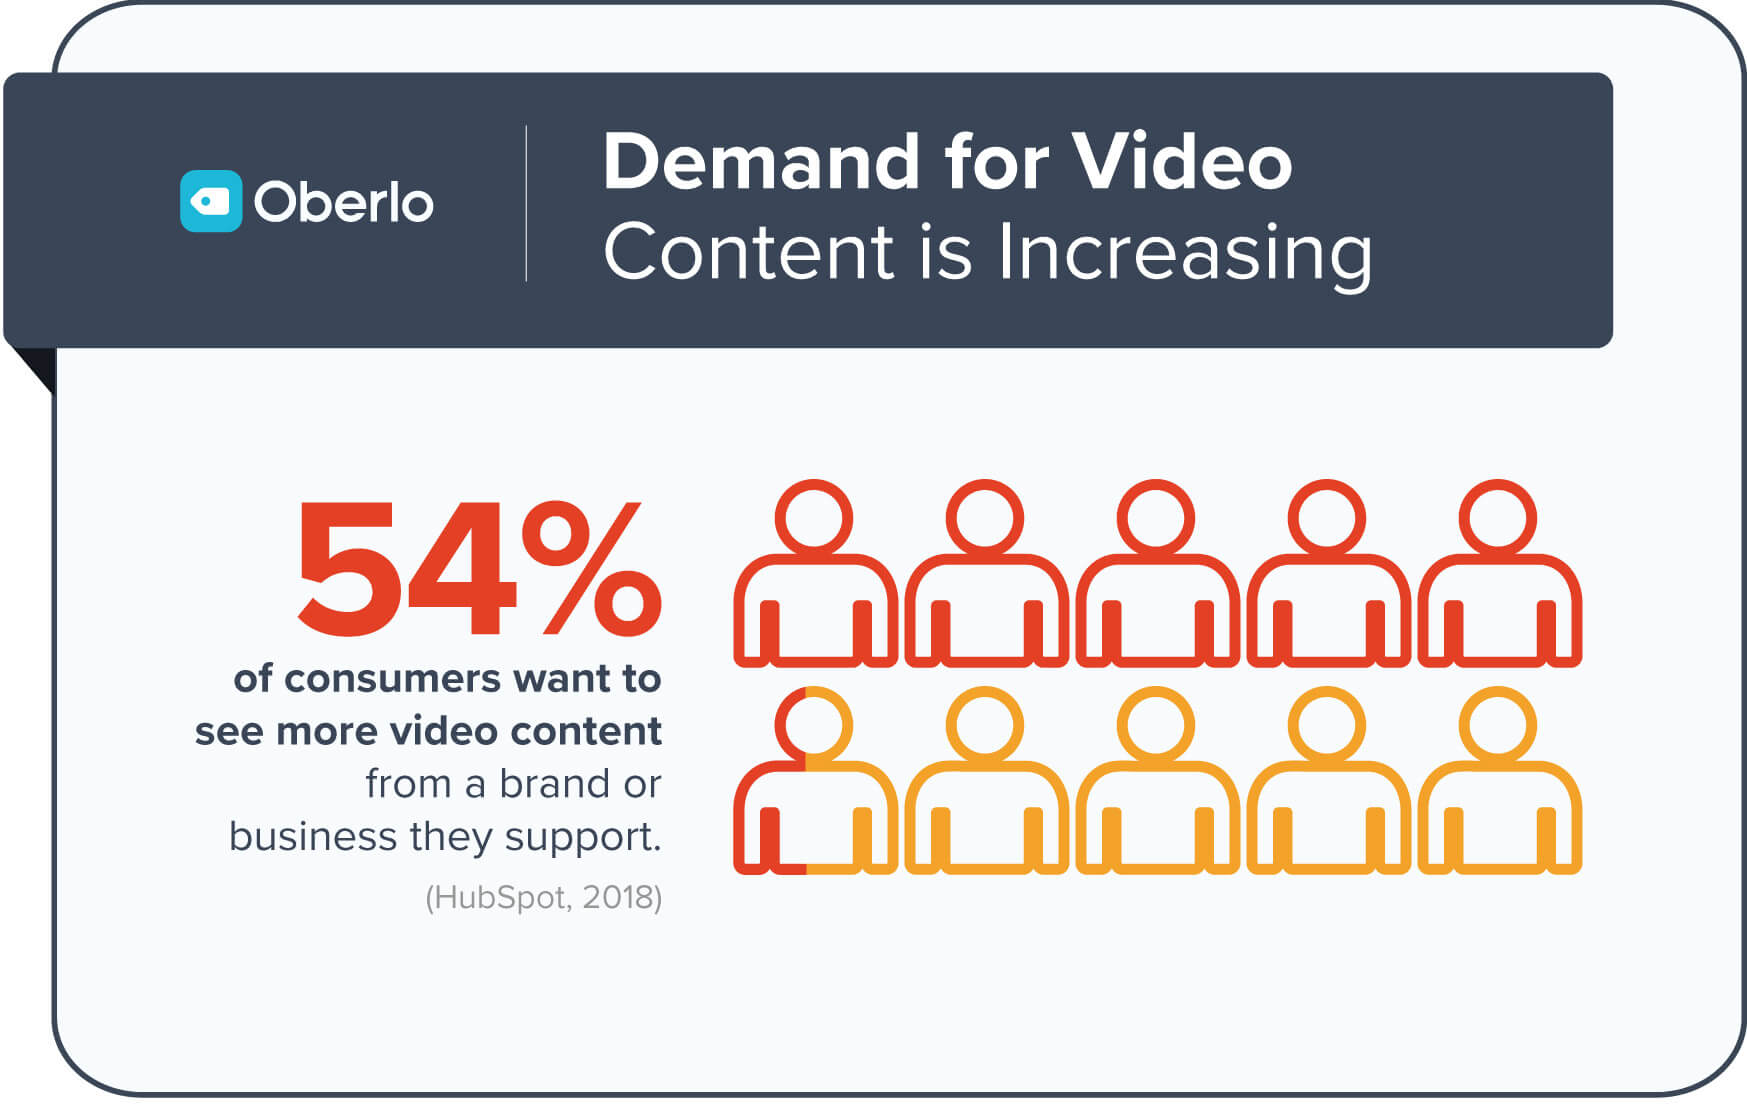 Demand for video